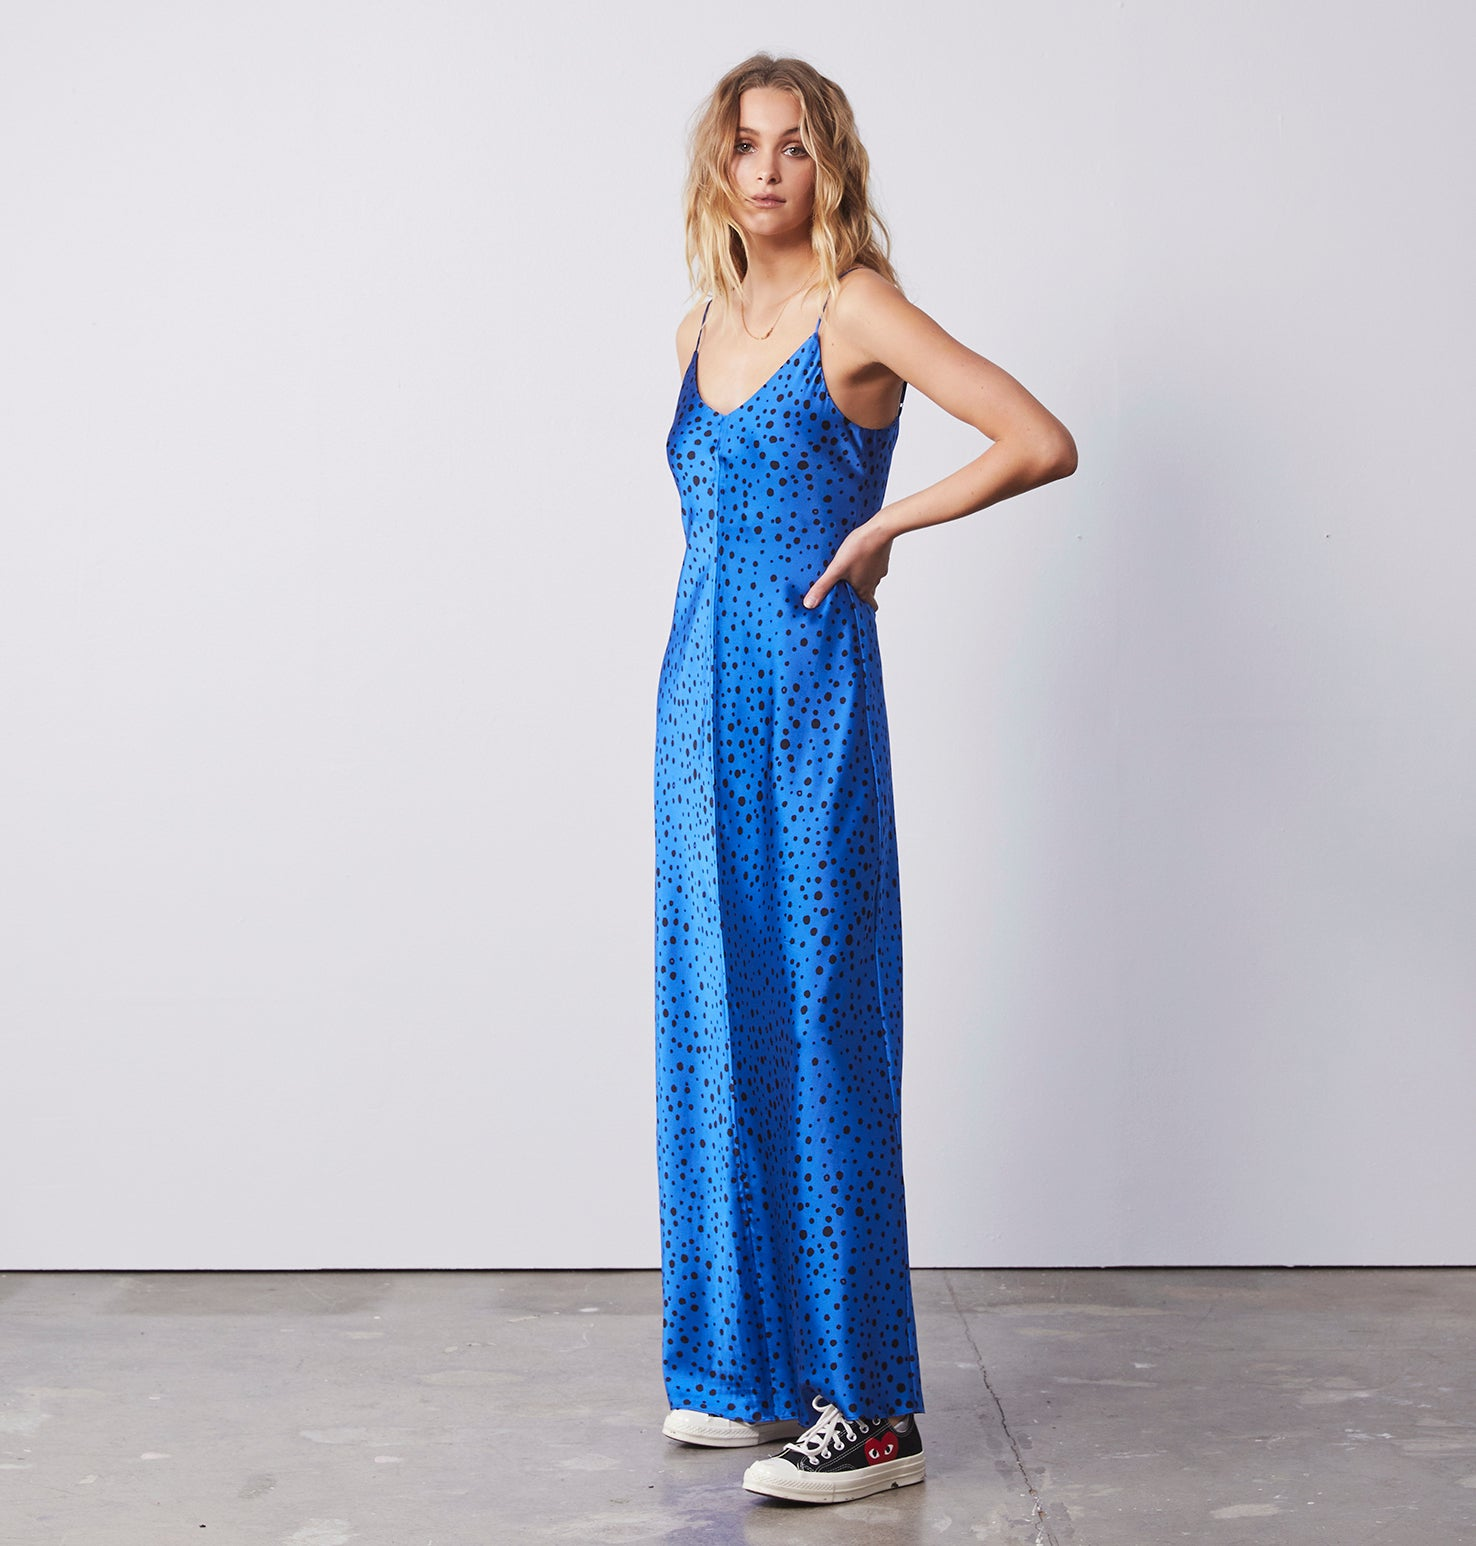 Clare Slip Long Dress - Polka Dot Blue